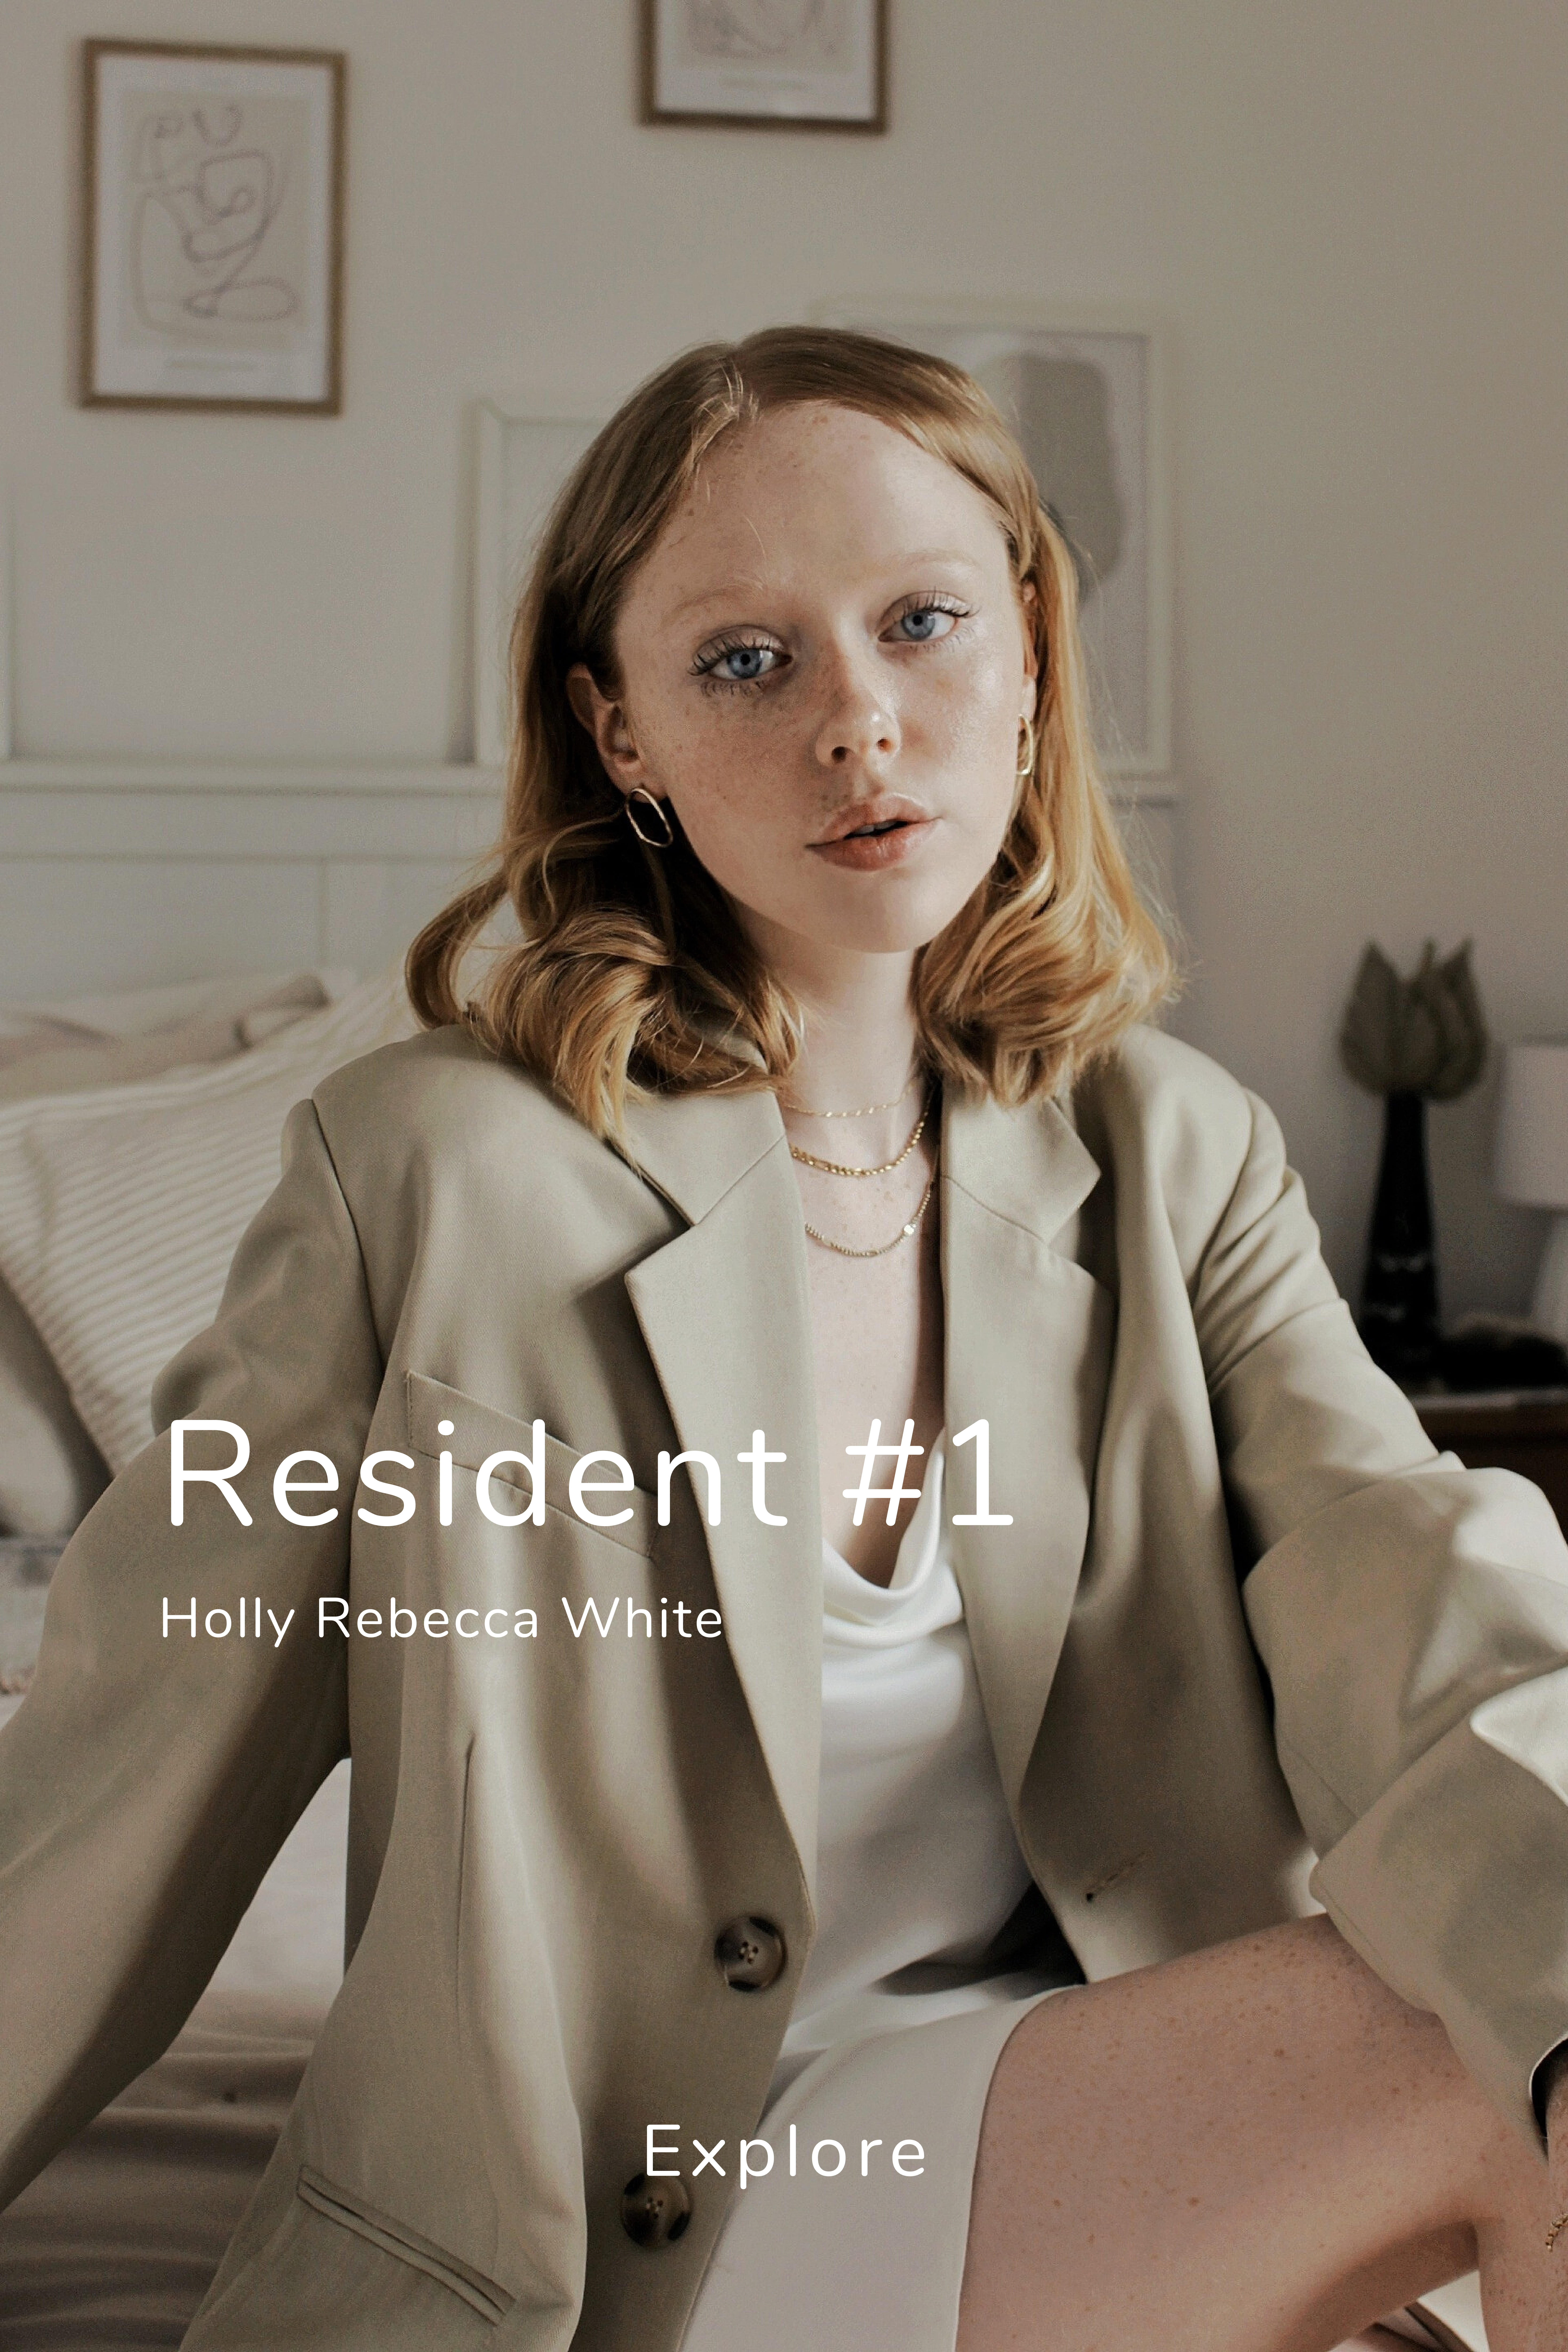 Resident #1 Holly Rebecca White